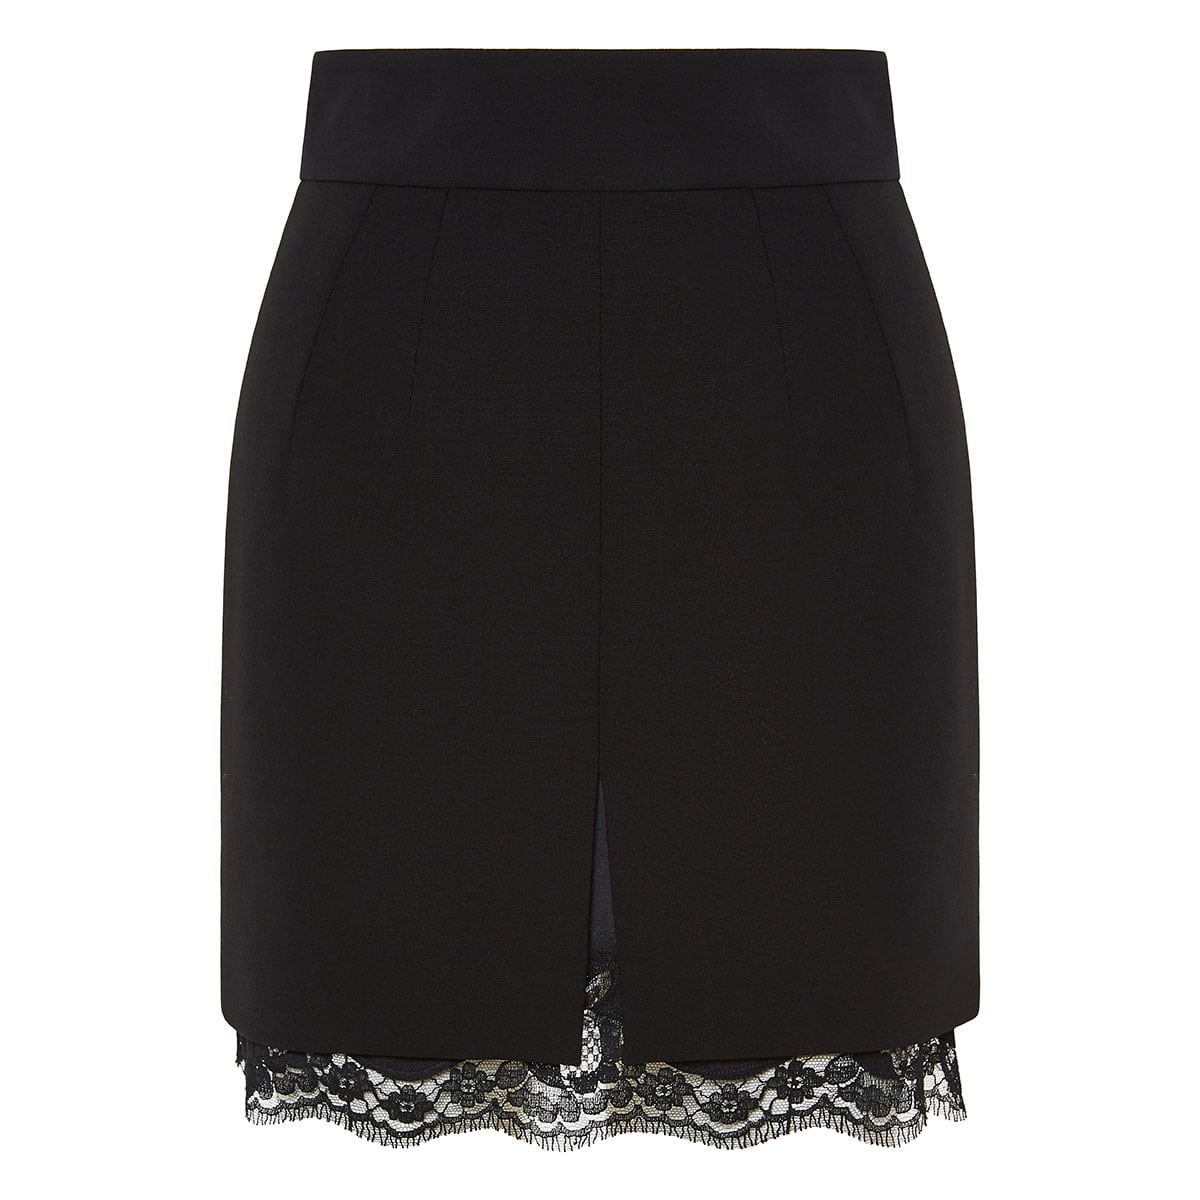 Lace-trimmed mini skirt